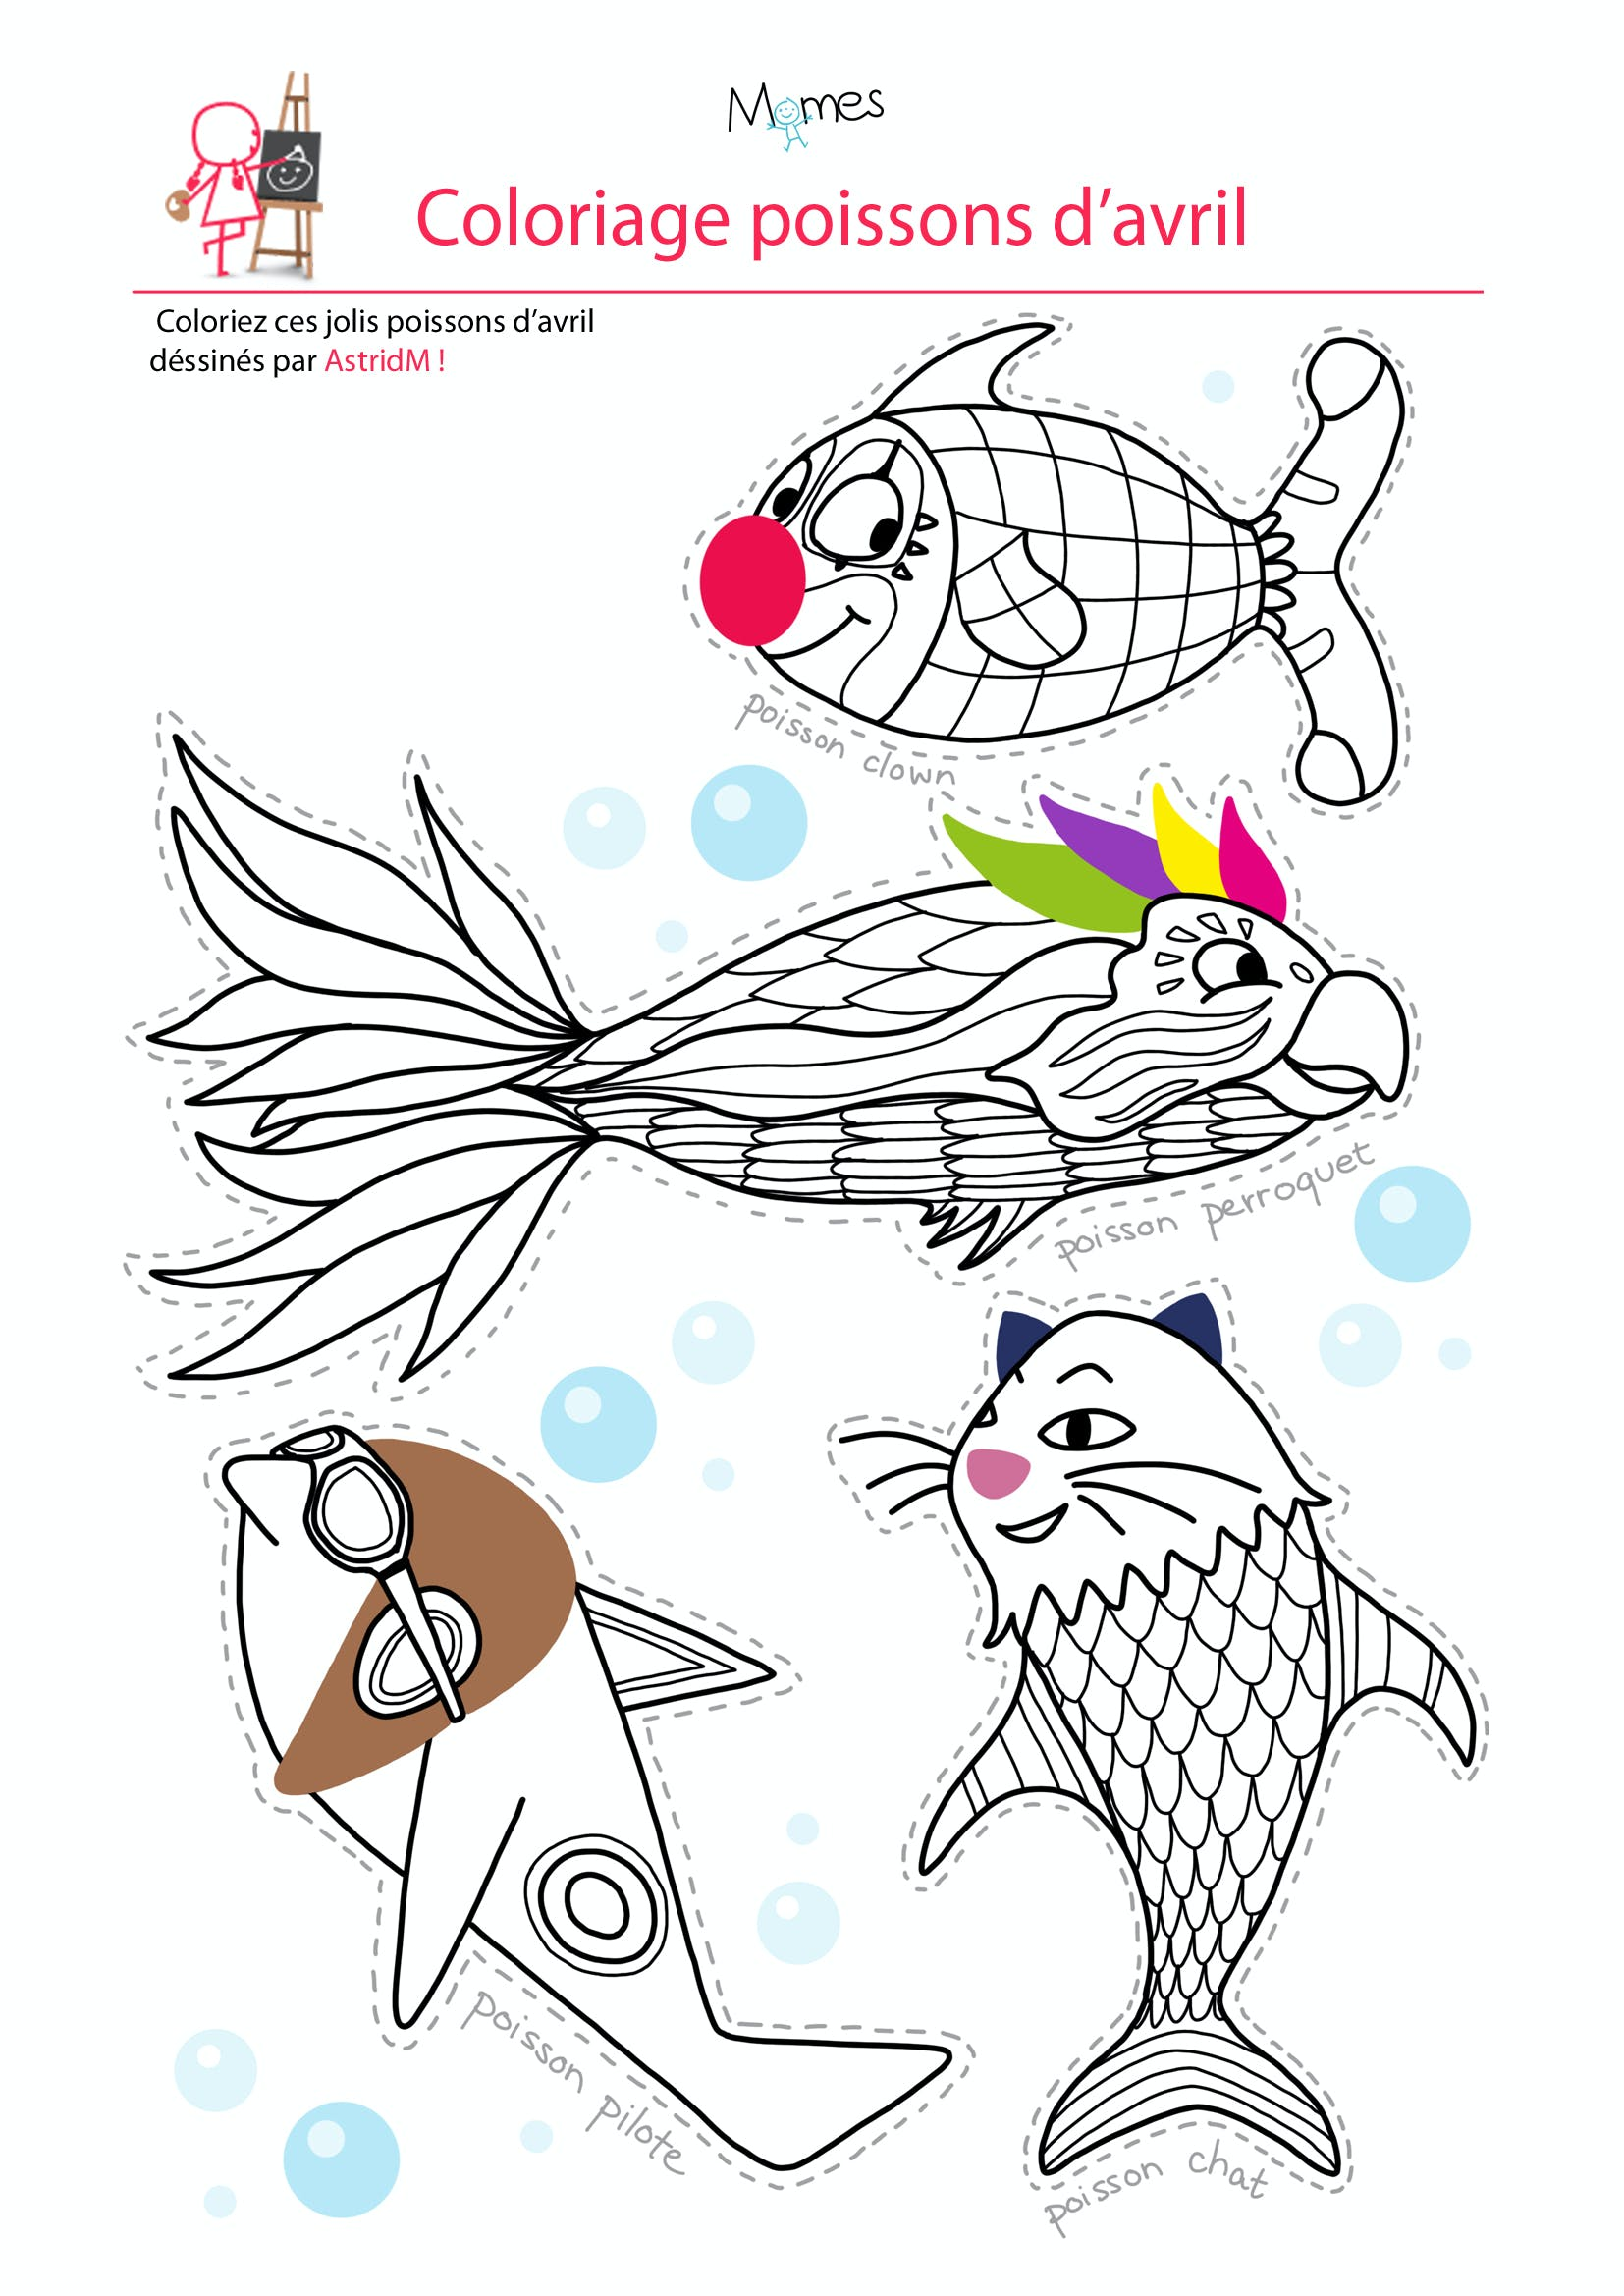 Coloriage 4 poissons d 39 avril - Poisson d avril dessin ...